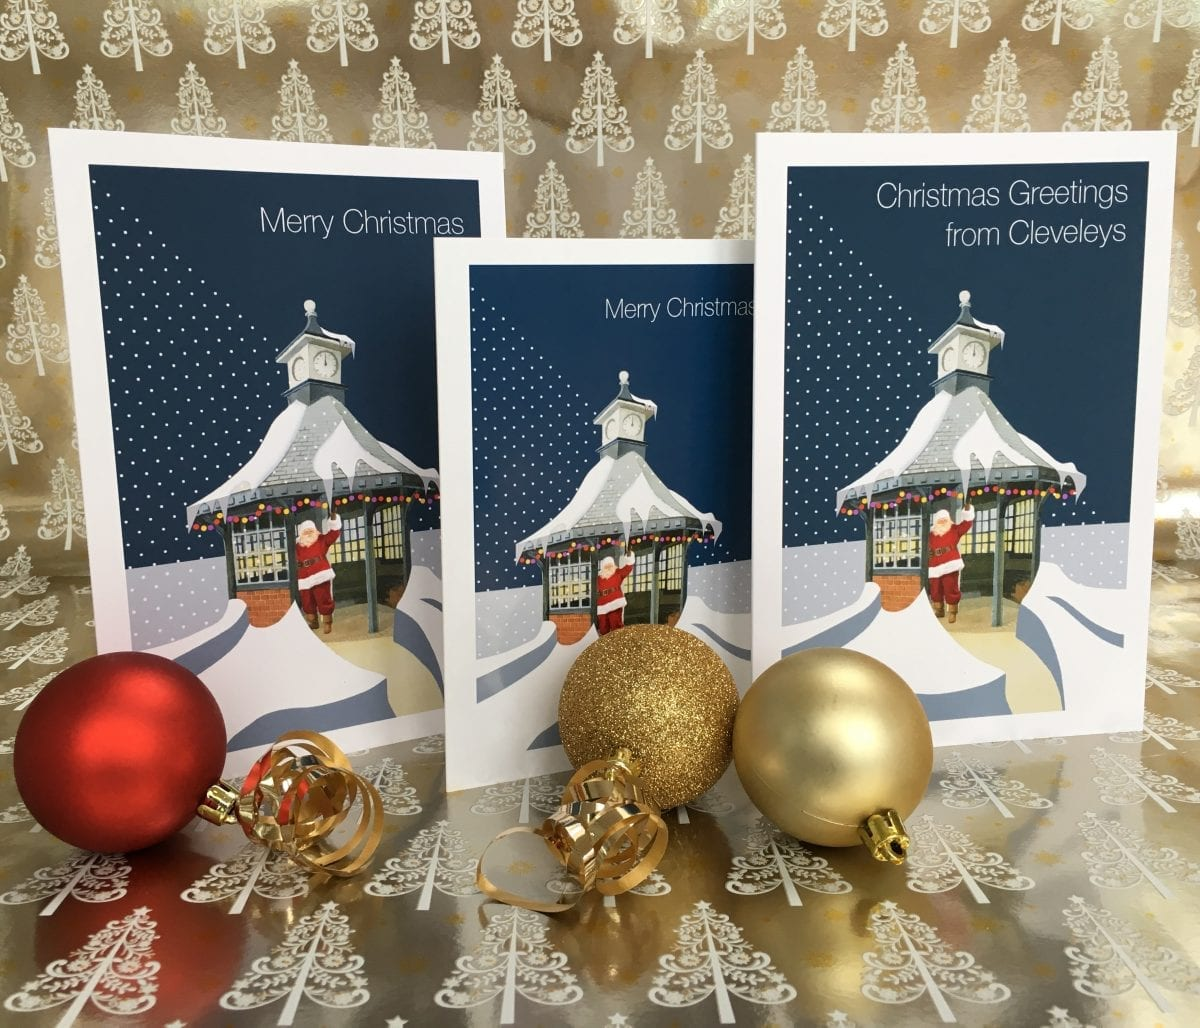 Christmas Card Greetings.Christmas Card Greetings From Cleveleys